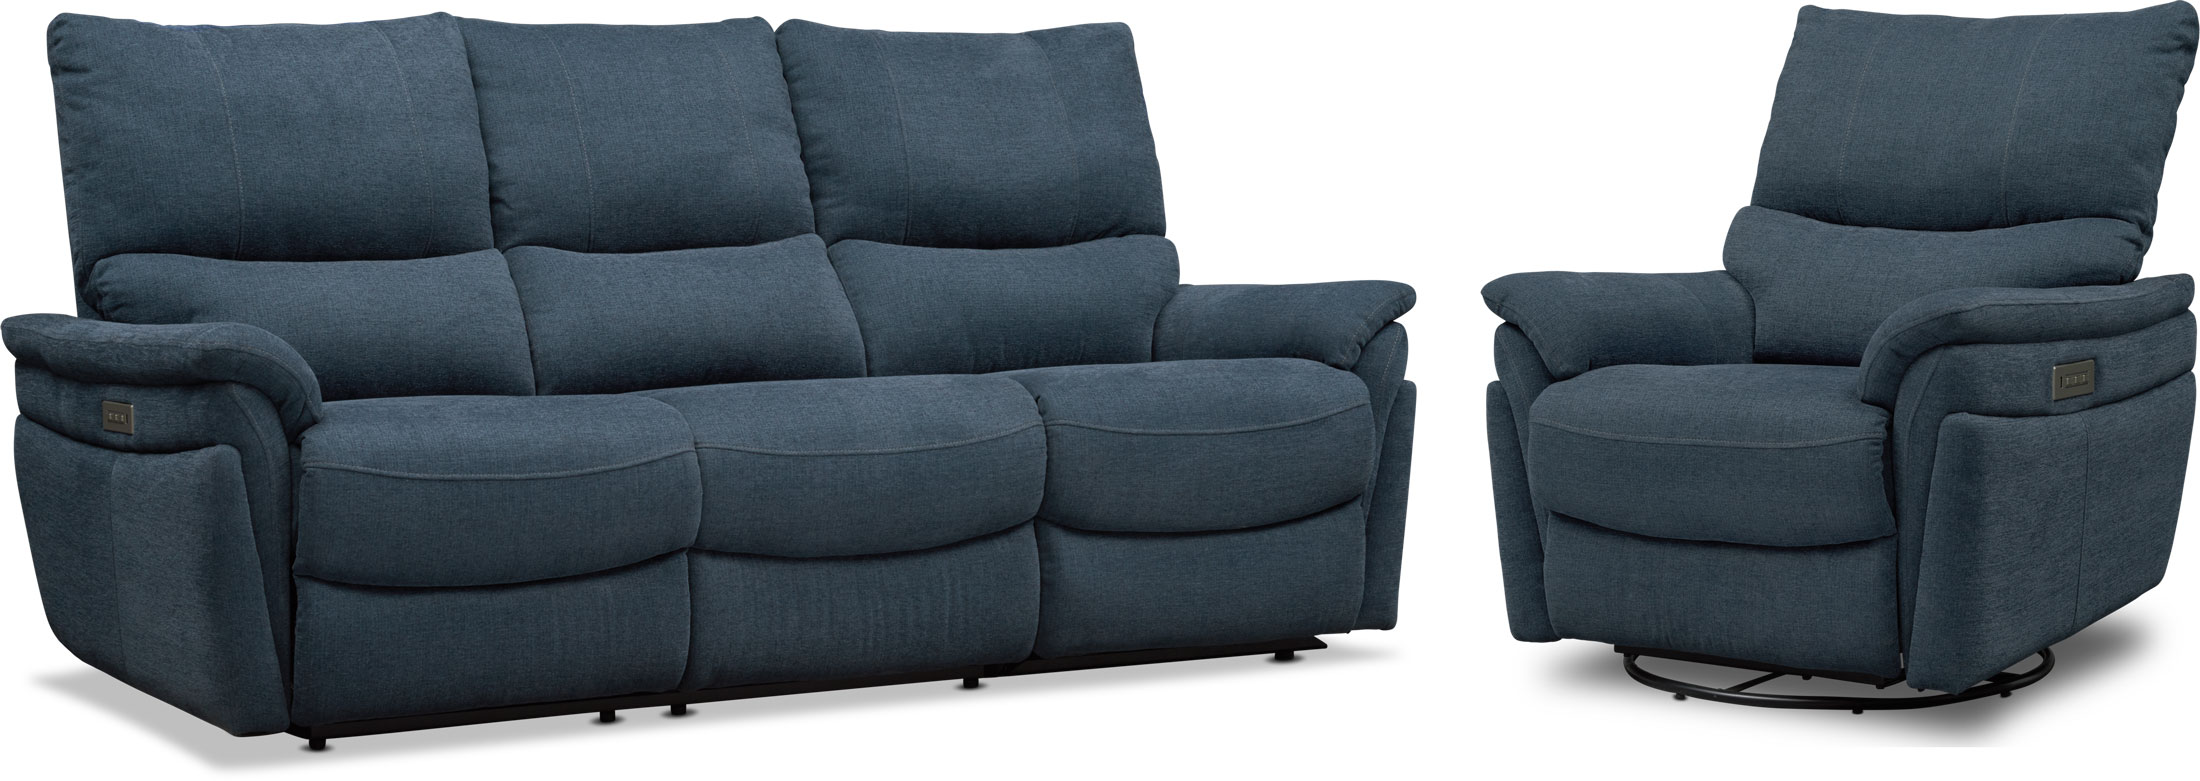 Living Room Furniture - Maddox Triple-Power Reclining Sofa and Swivel Recliner